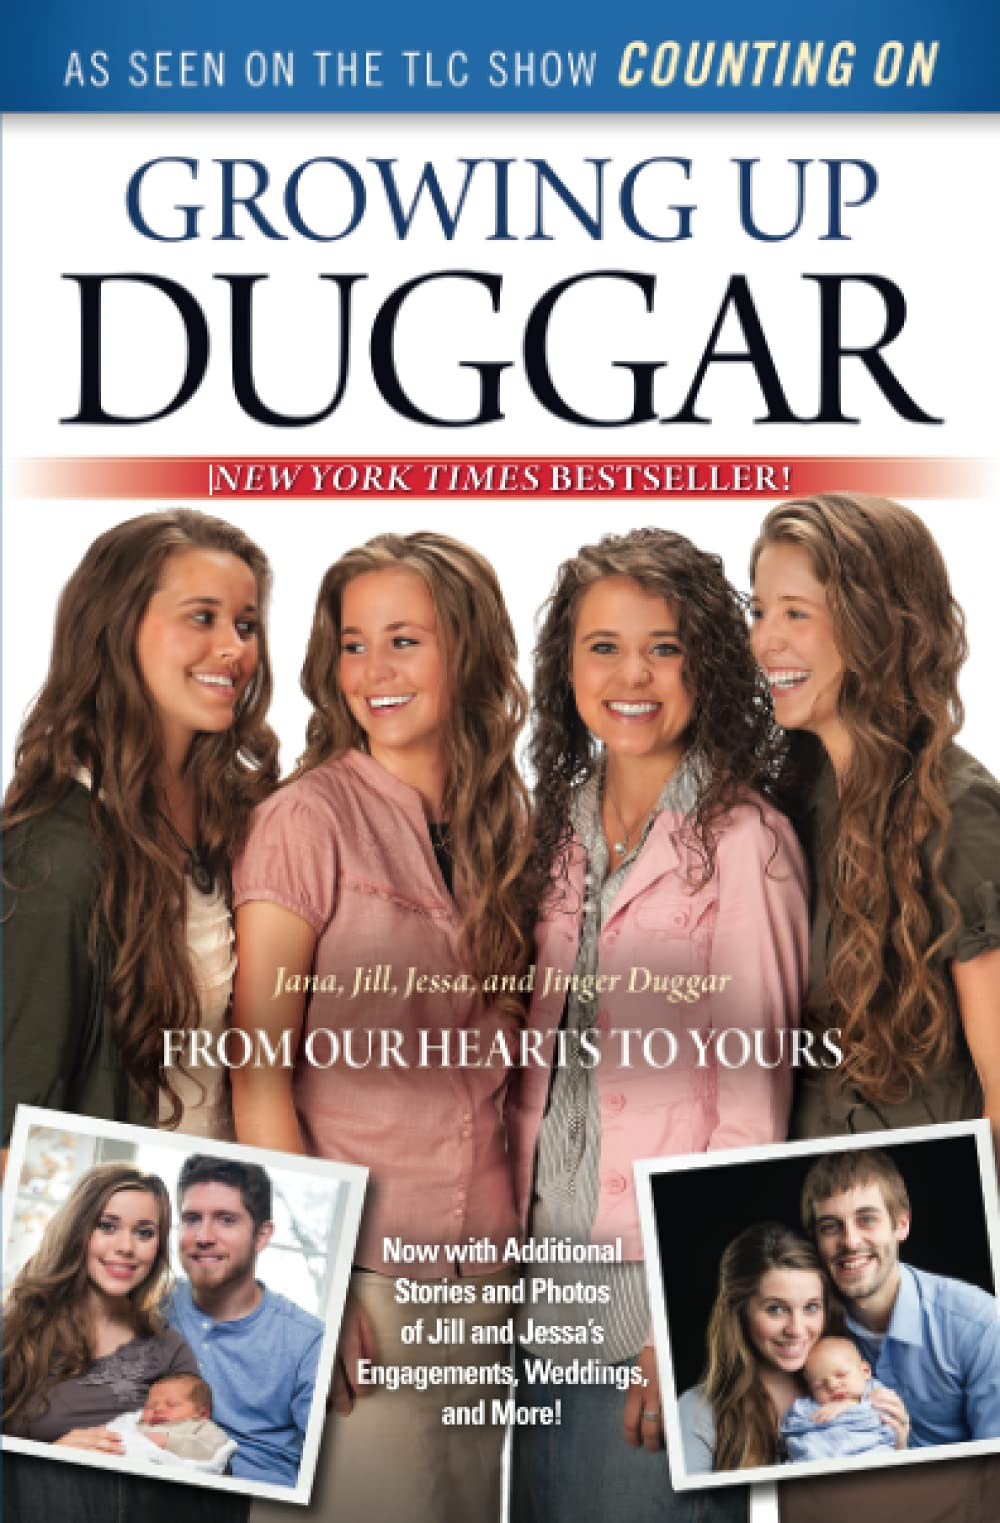 Not oldest duggar married girl Who is